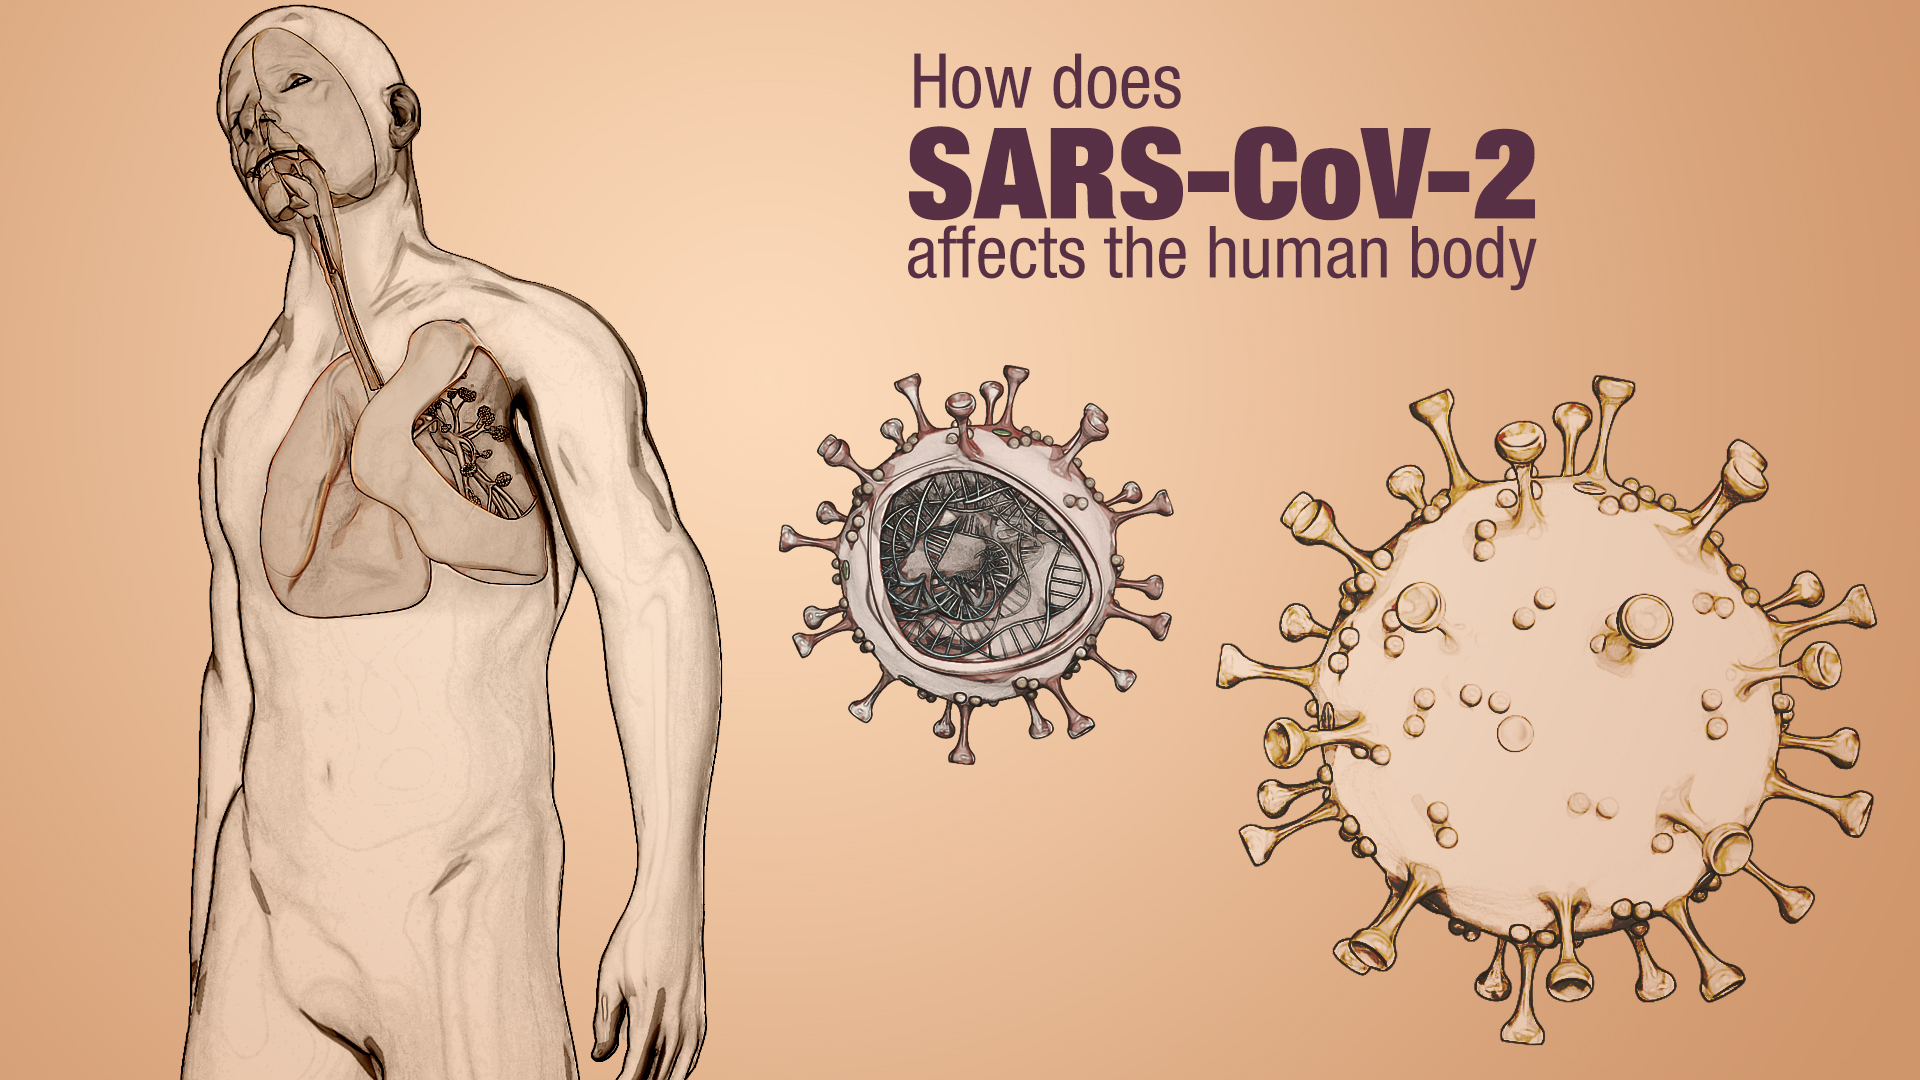 Effects of SARS-CoV-2 infection